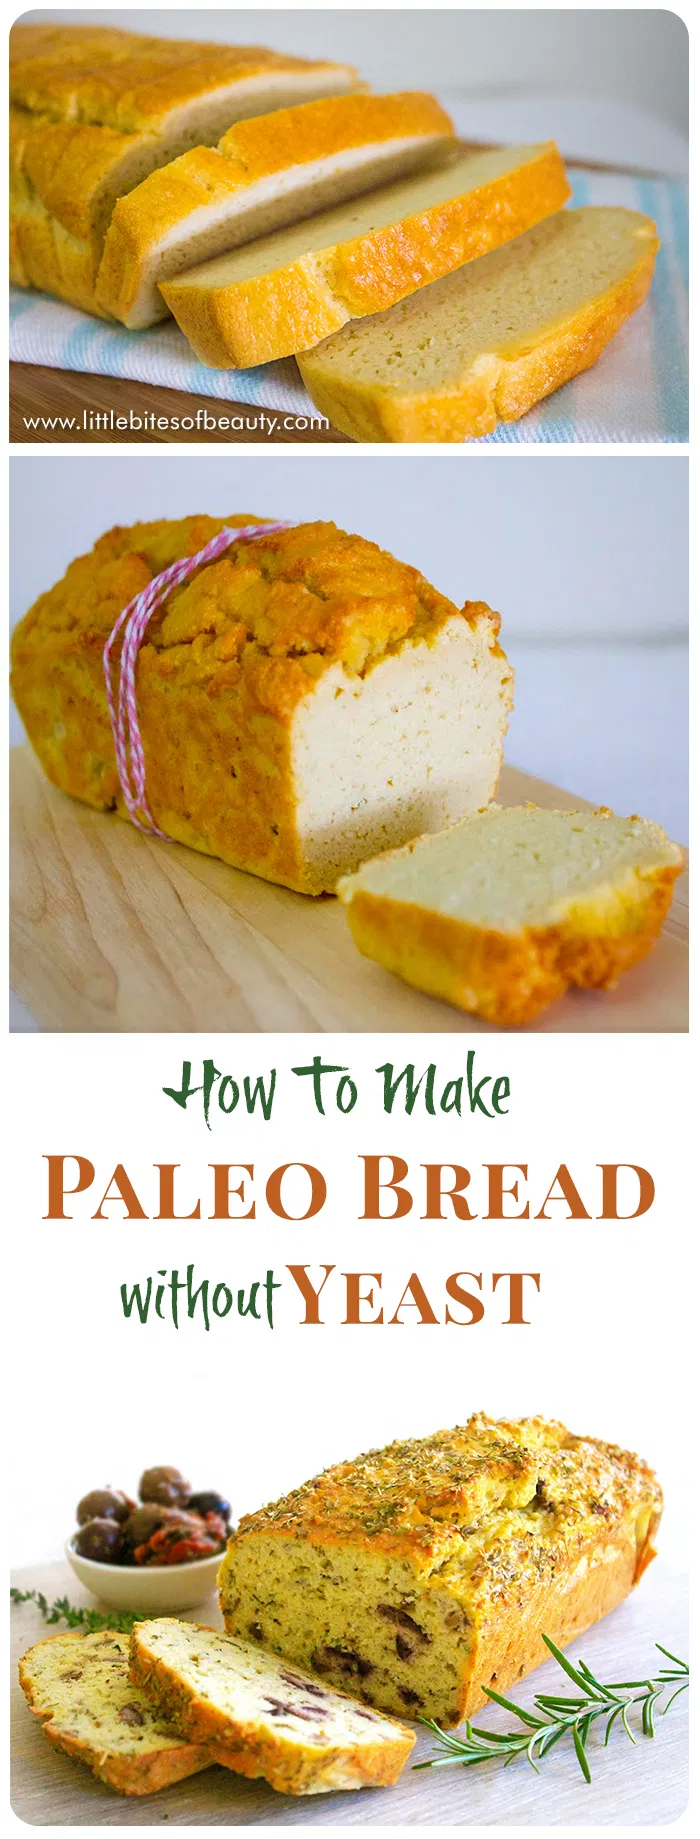 How To Make Paleo Bread Without Yeast - Little Bites of ...